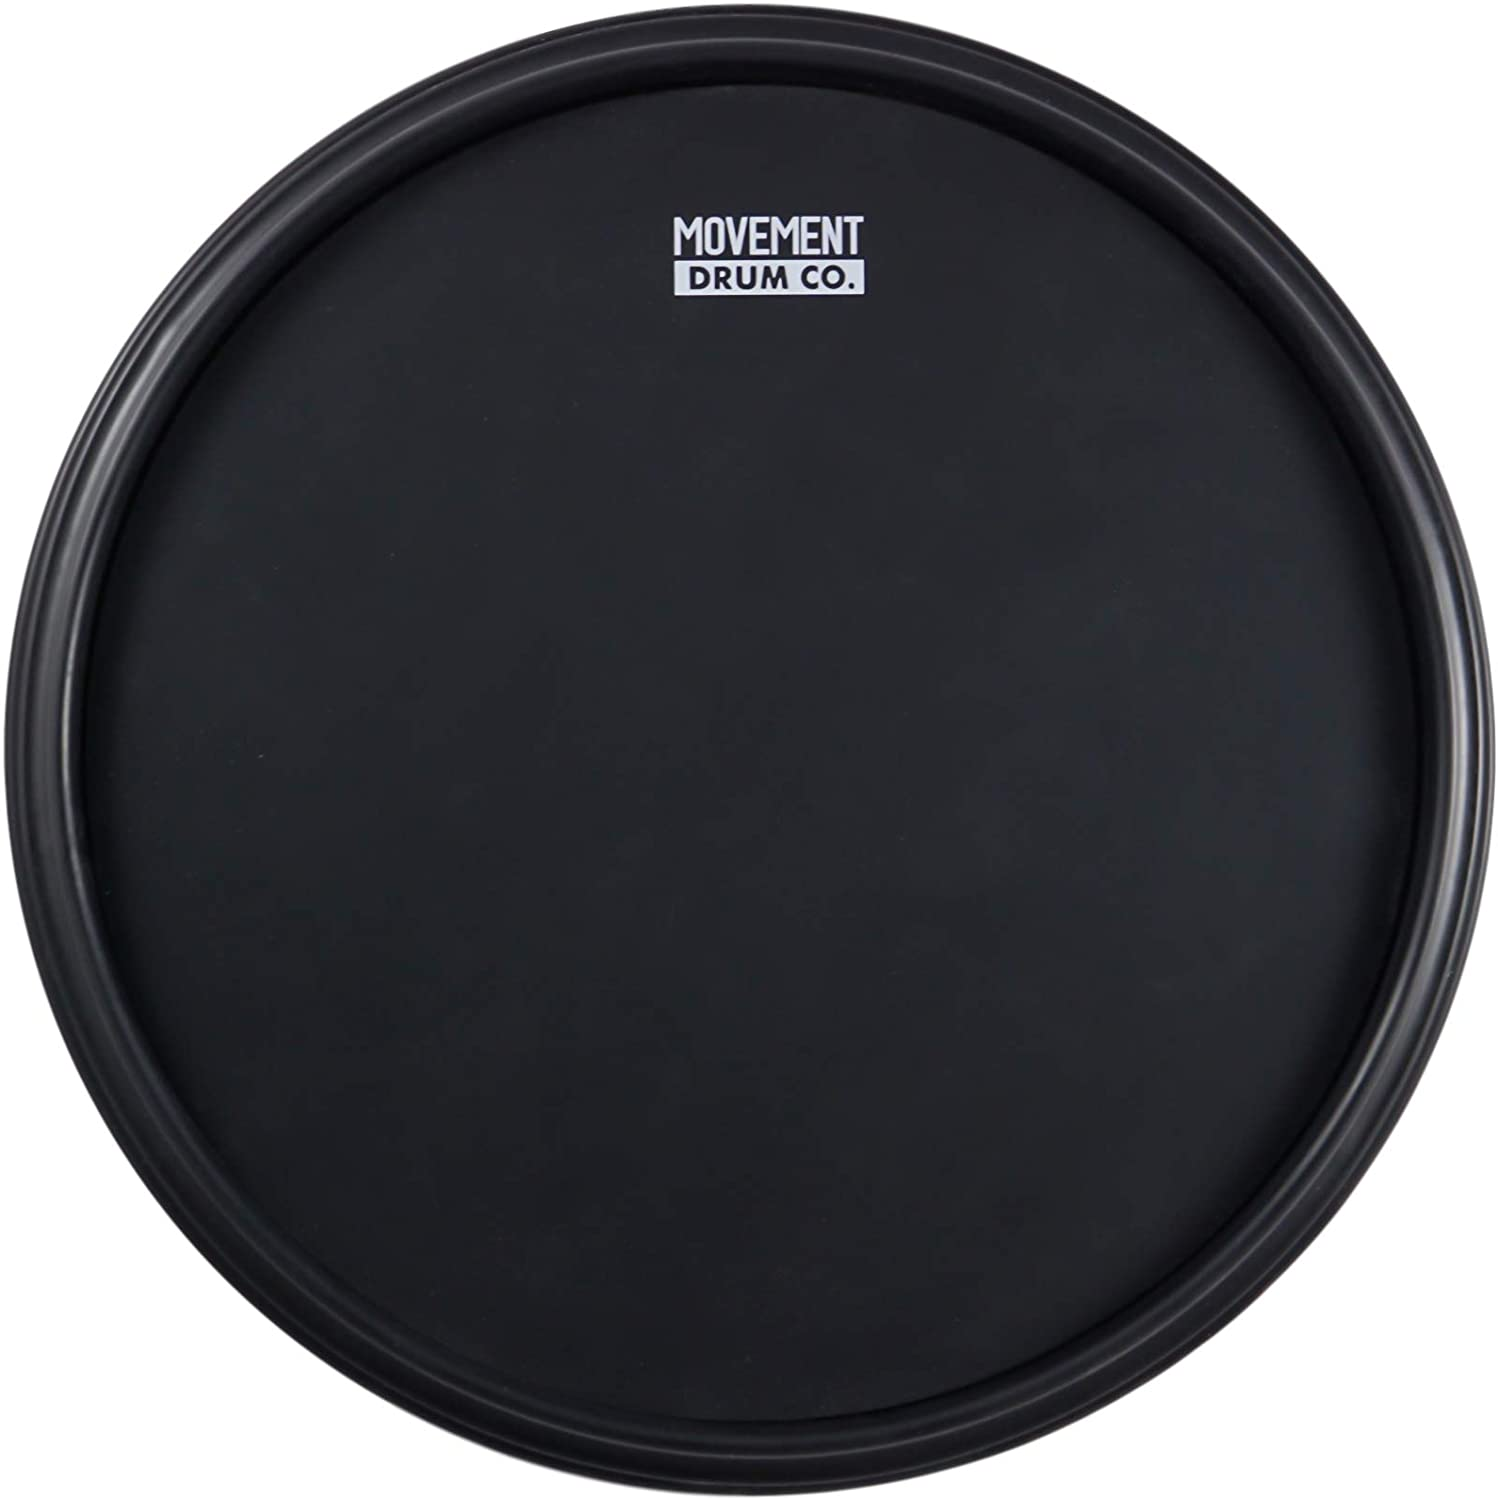 Conditioning The Double-sided Practice Drum Pad 4-in-1 Laminate